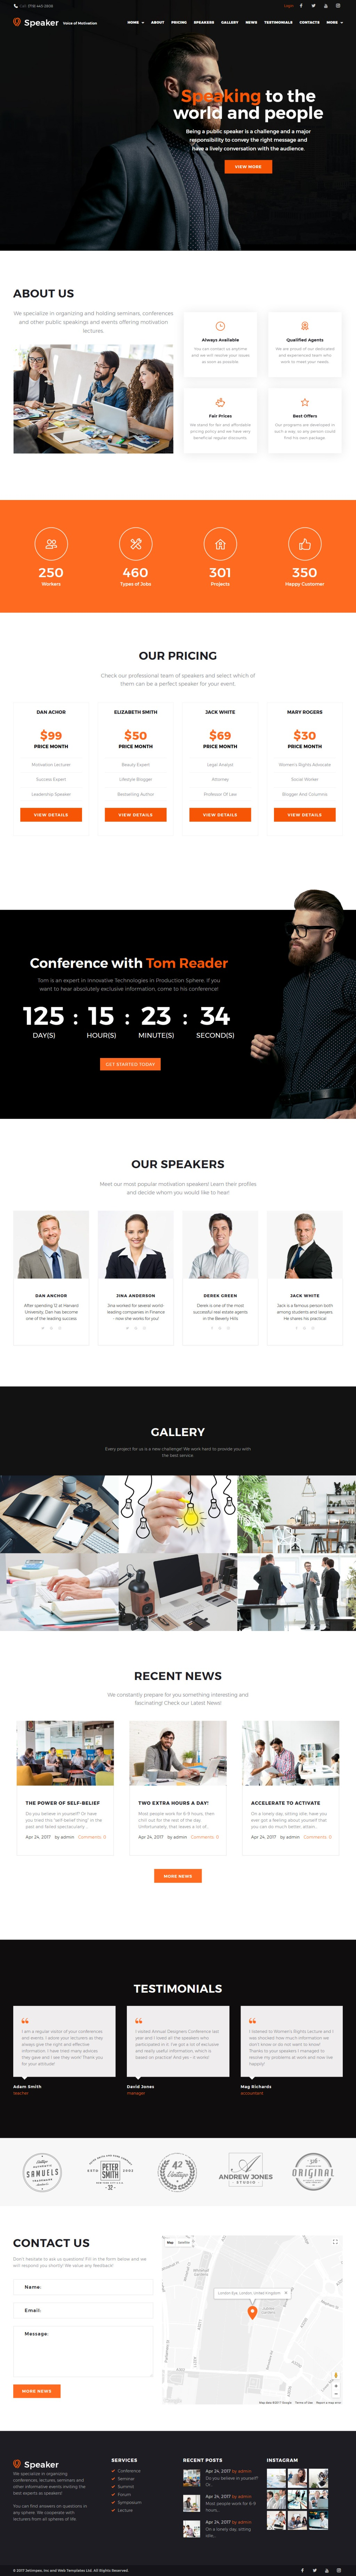 speaker wordpress theme - speaker-wordpress-theme